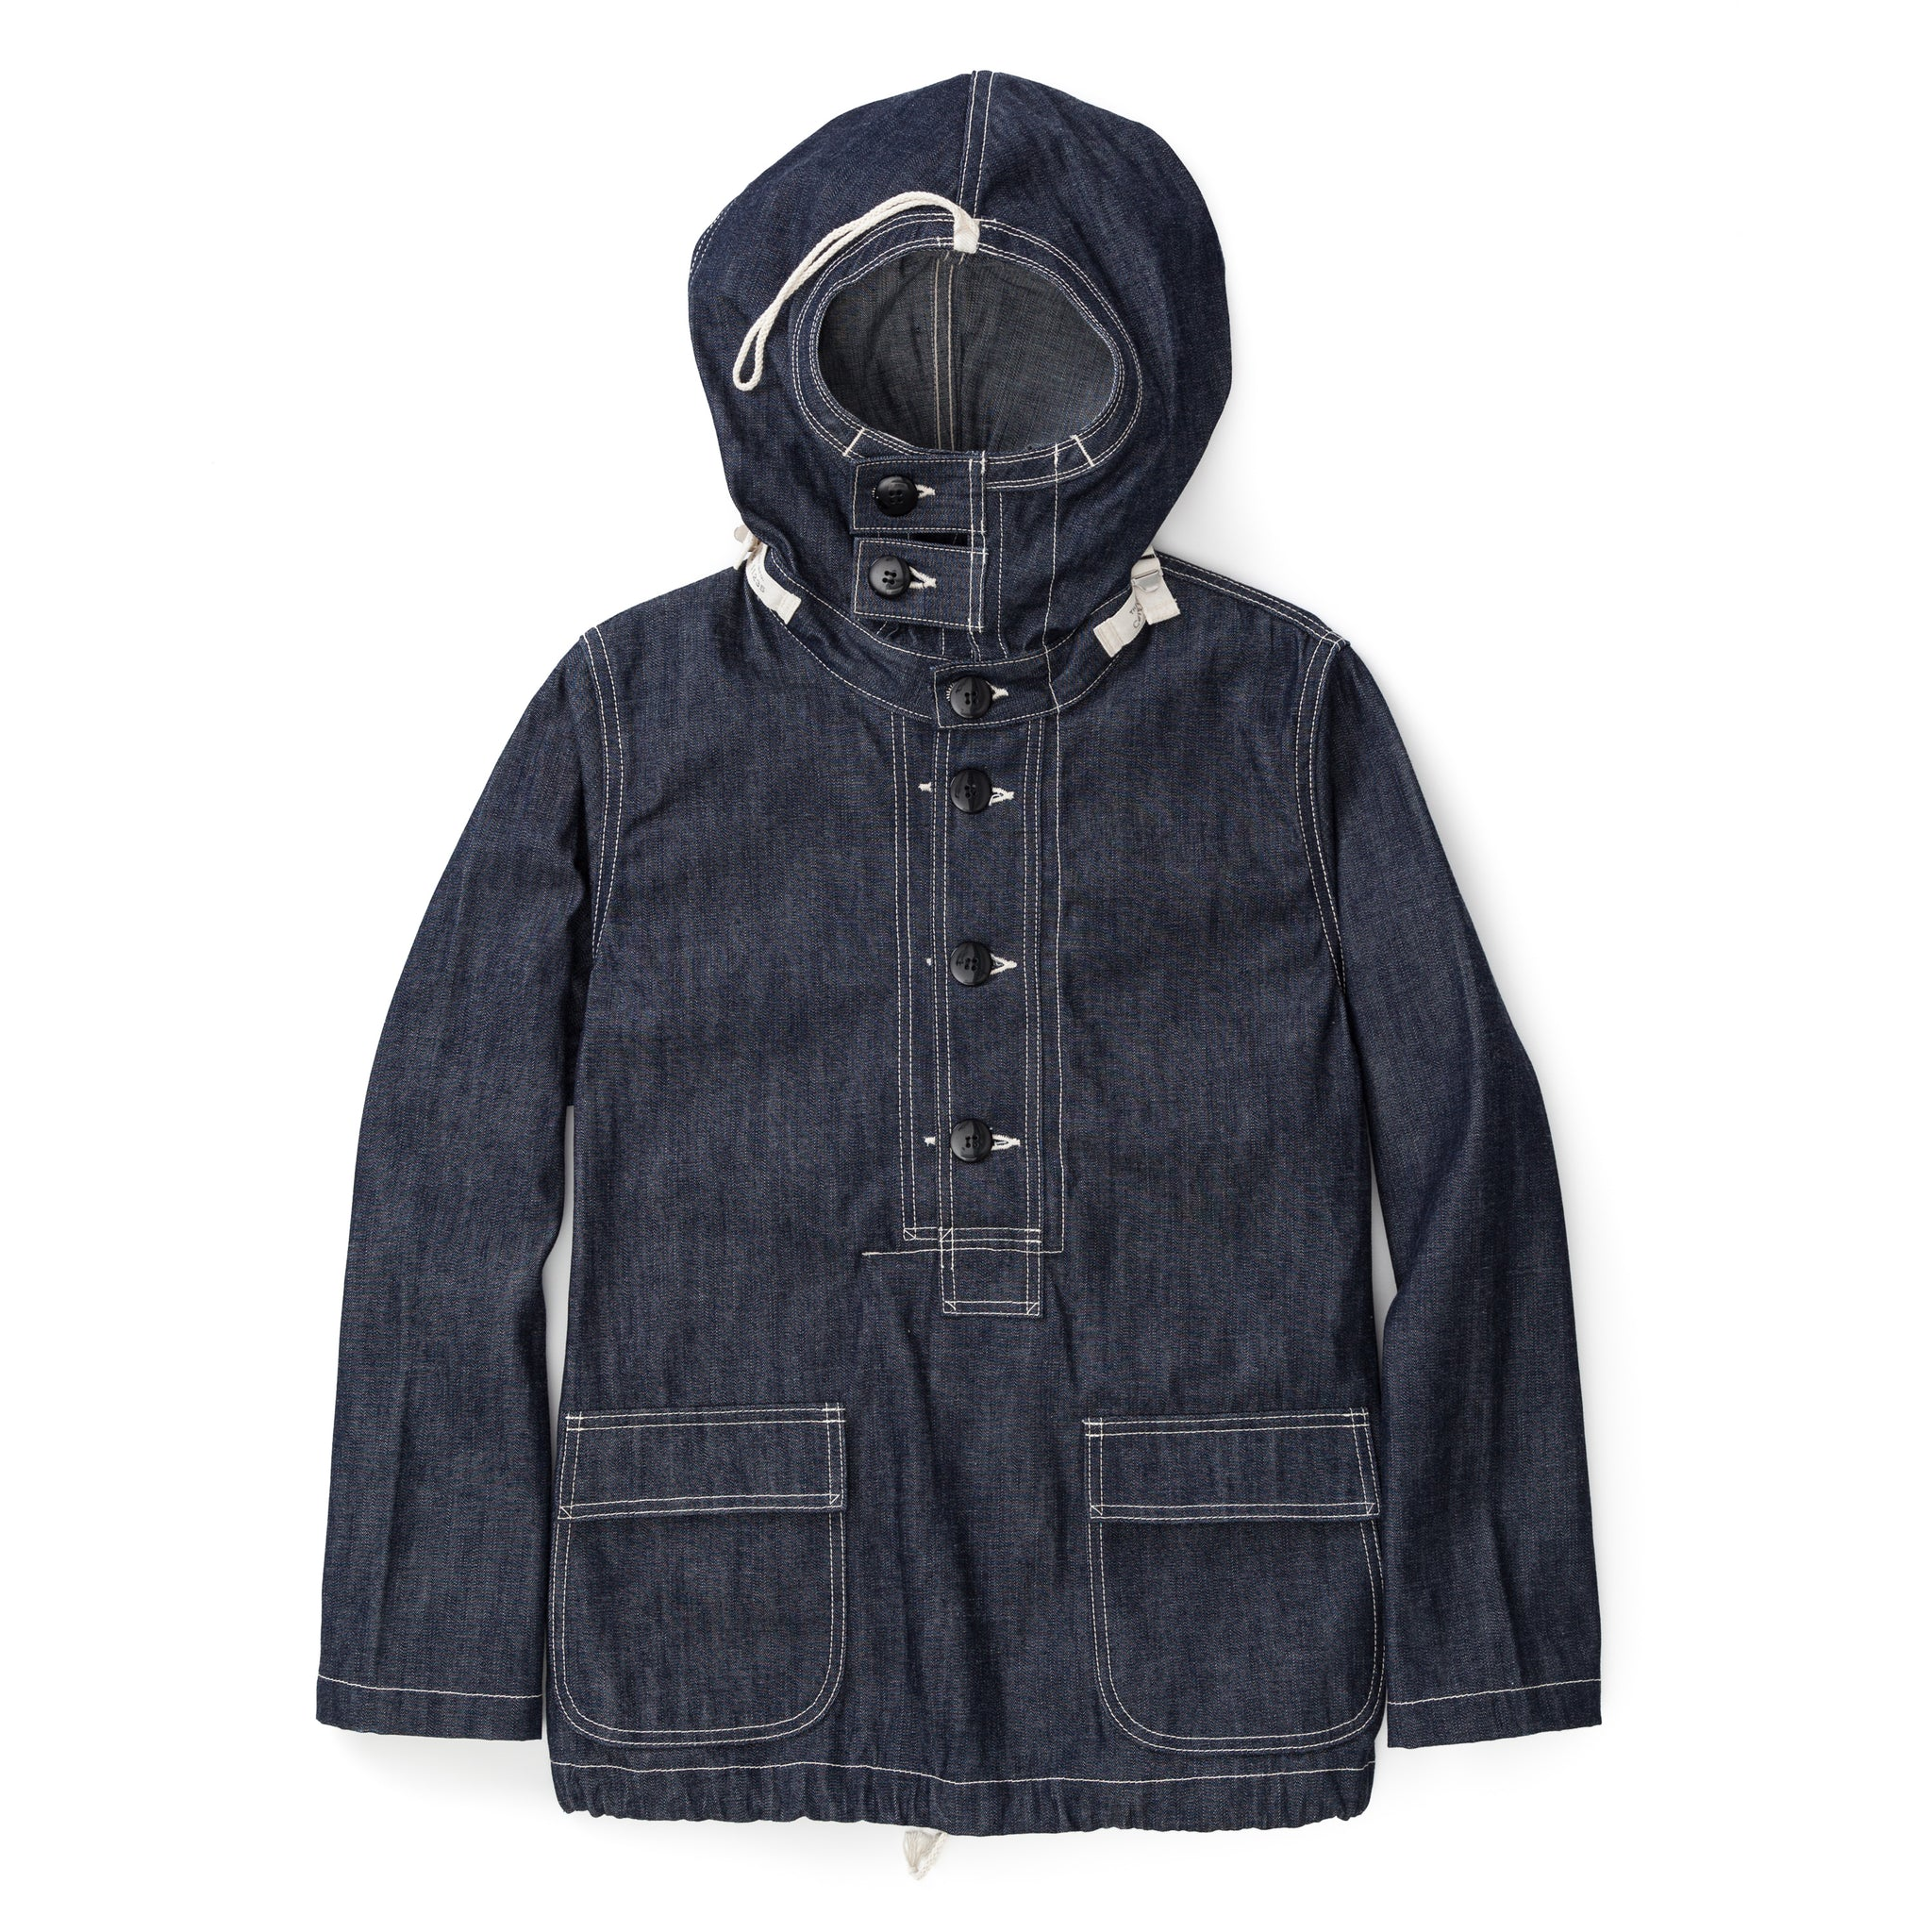 MJ13004-140 U.S. Navy Denim Parka